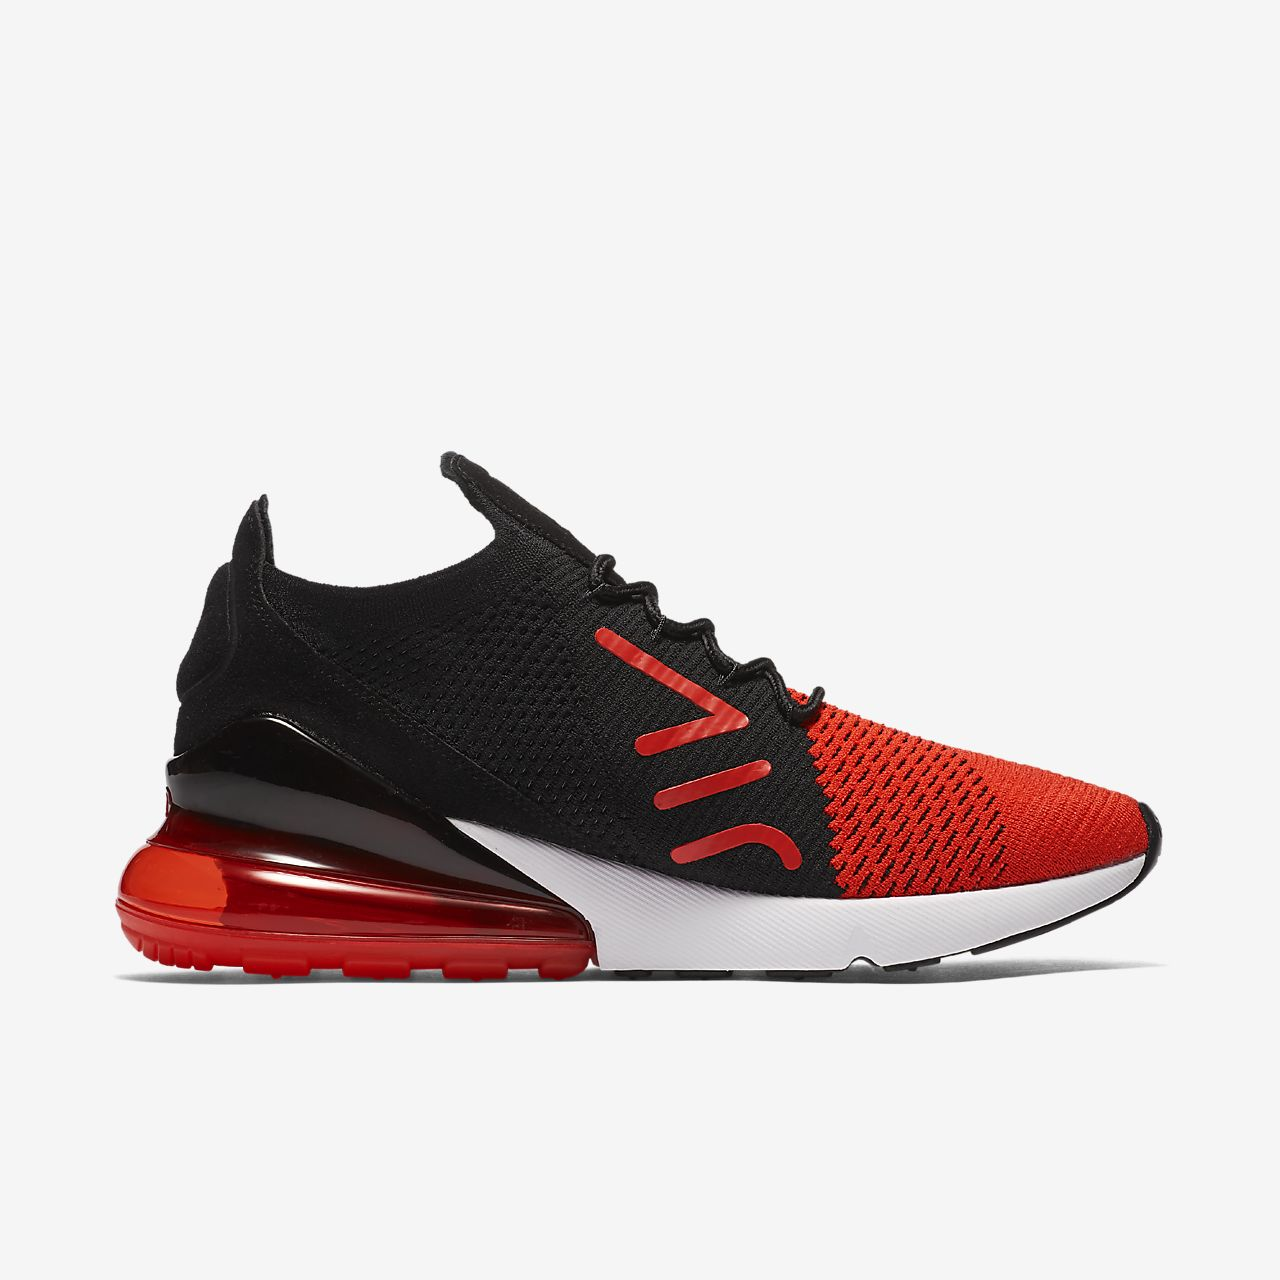 free shipping d4577 b31a8 ... Nike Air Max 270 Flyknit Mens Shoe